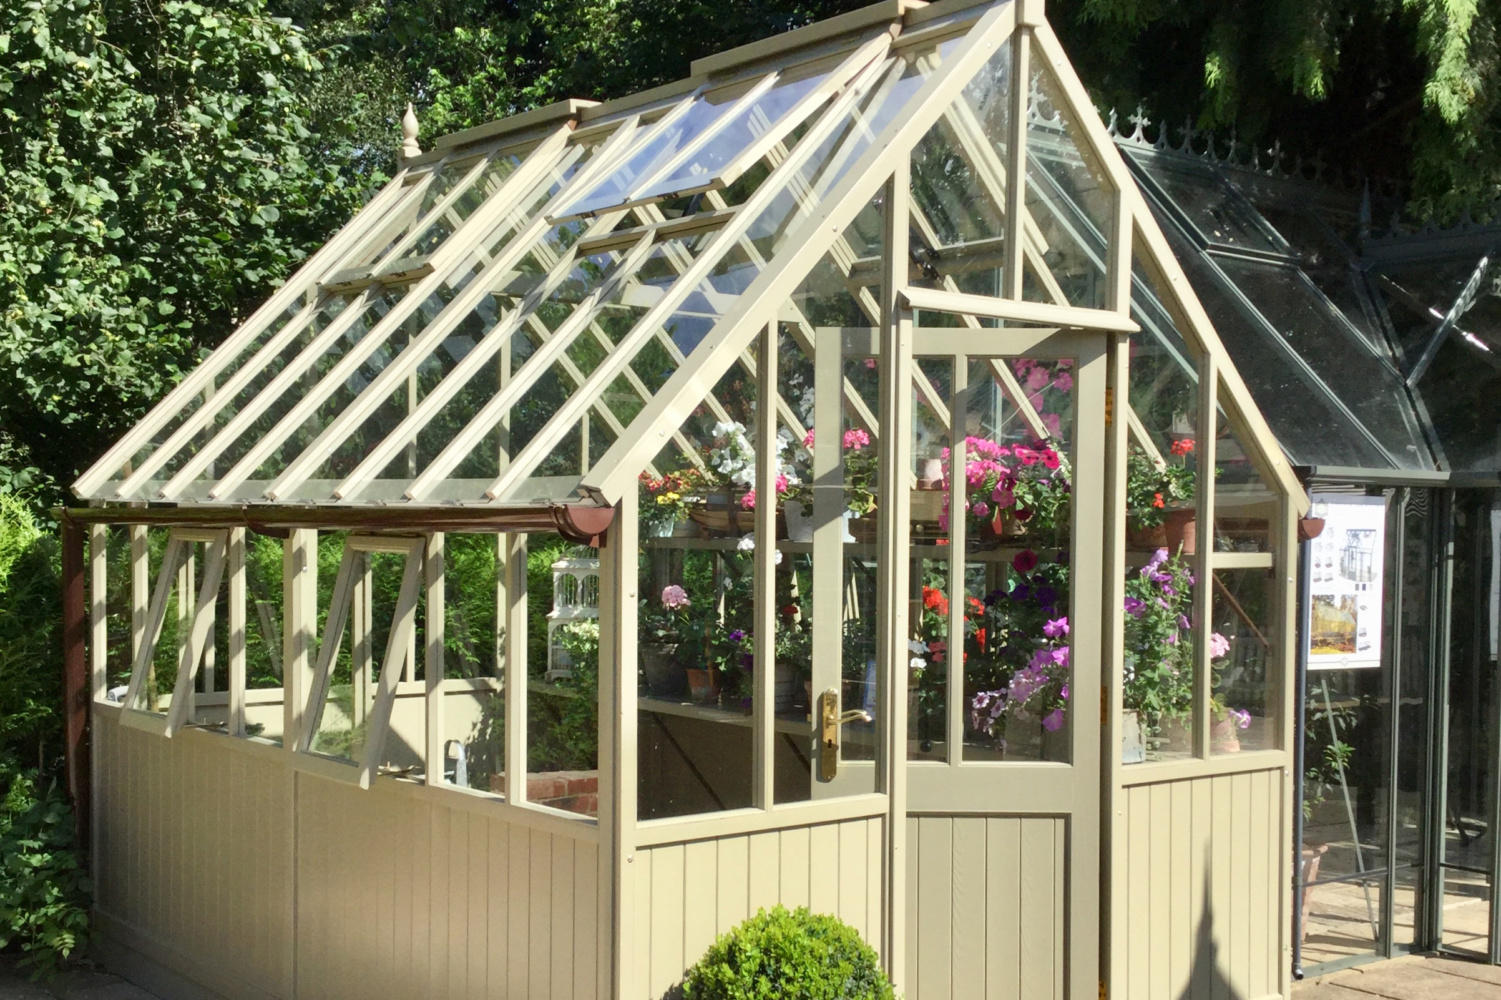 A wooden greenhouse painted in cream, filled with summer flowers